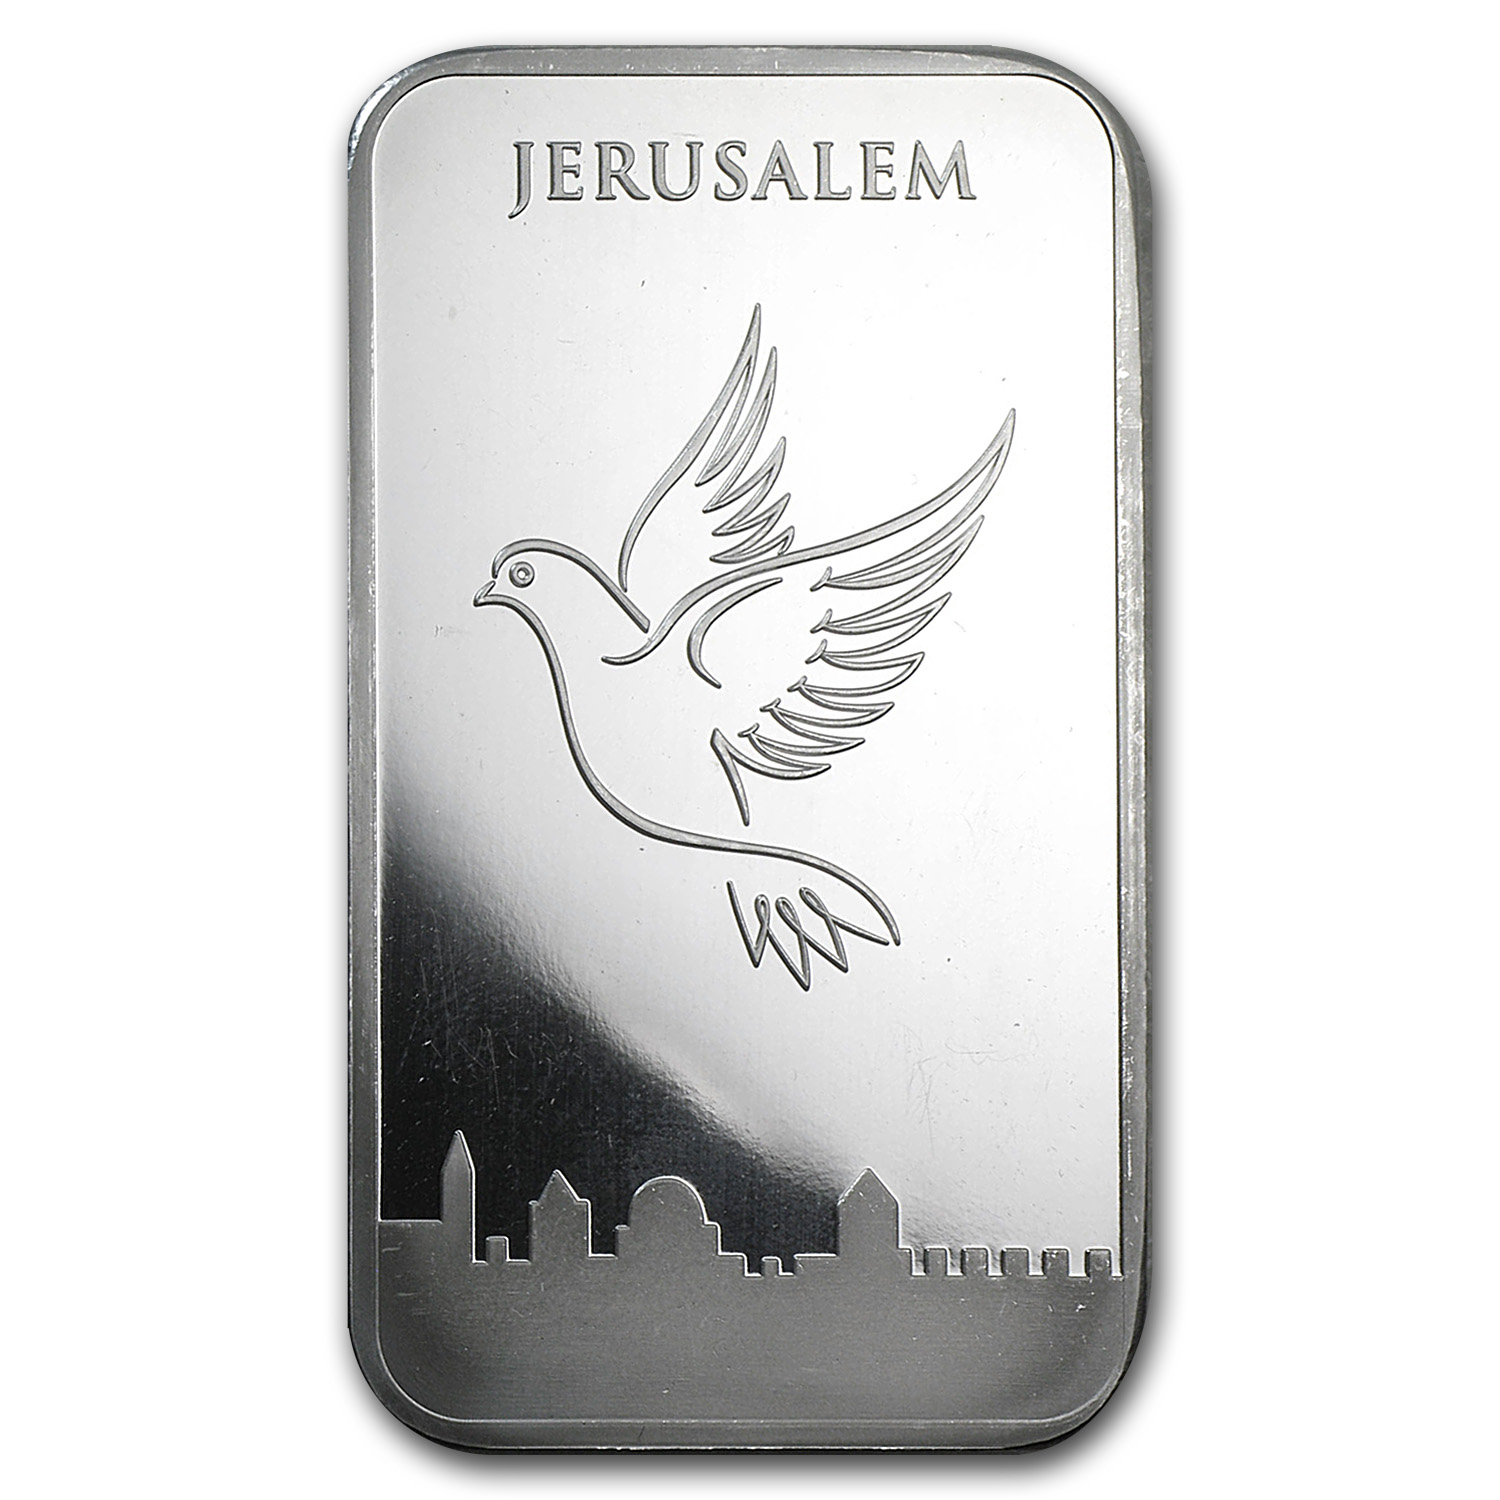 5 oz Silver Bars - Holy Land Mint (Dove of Peace)